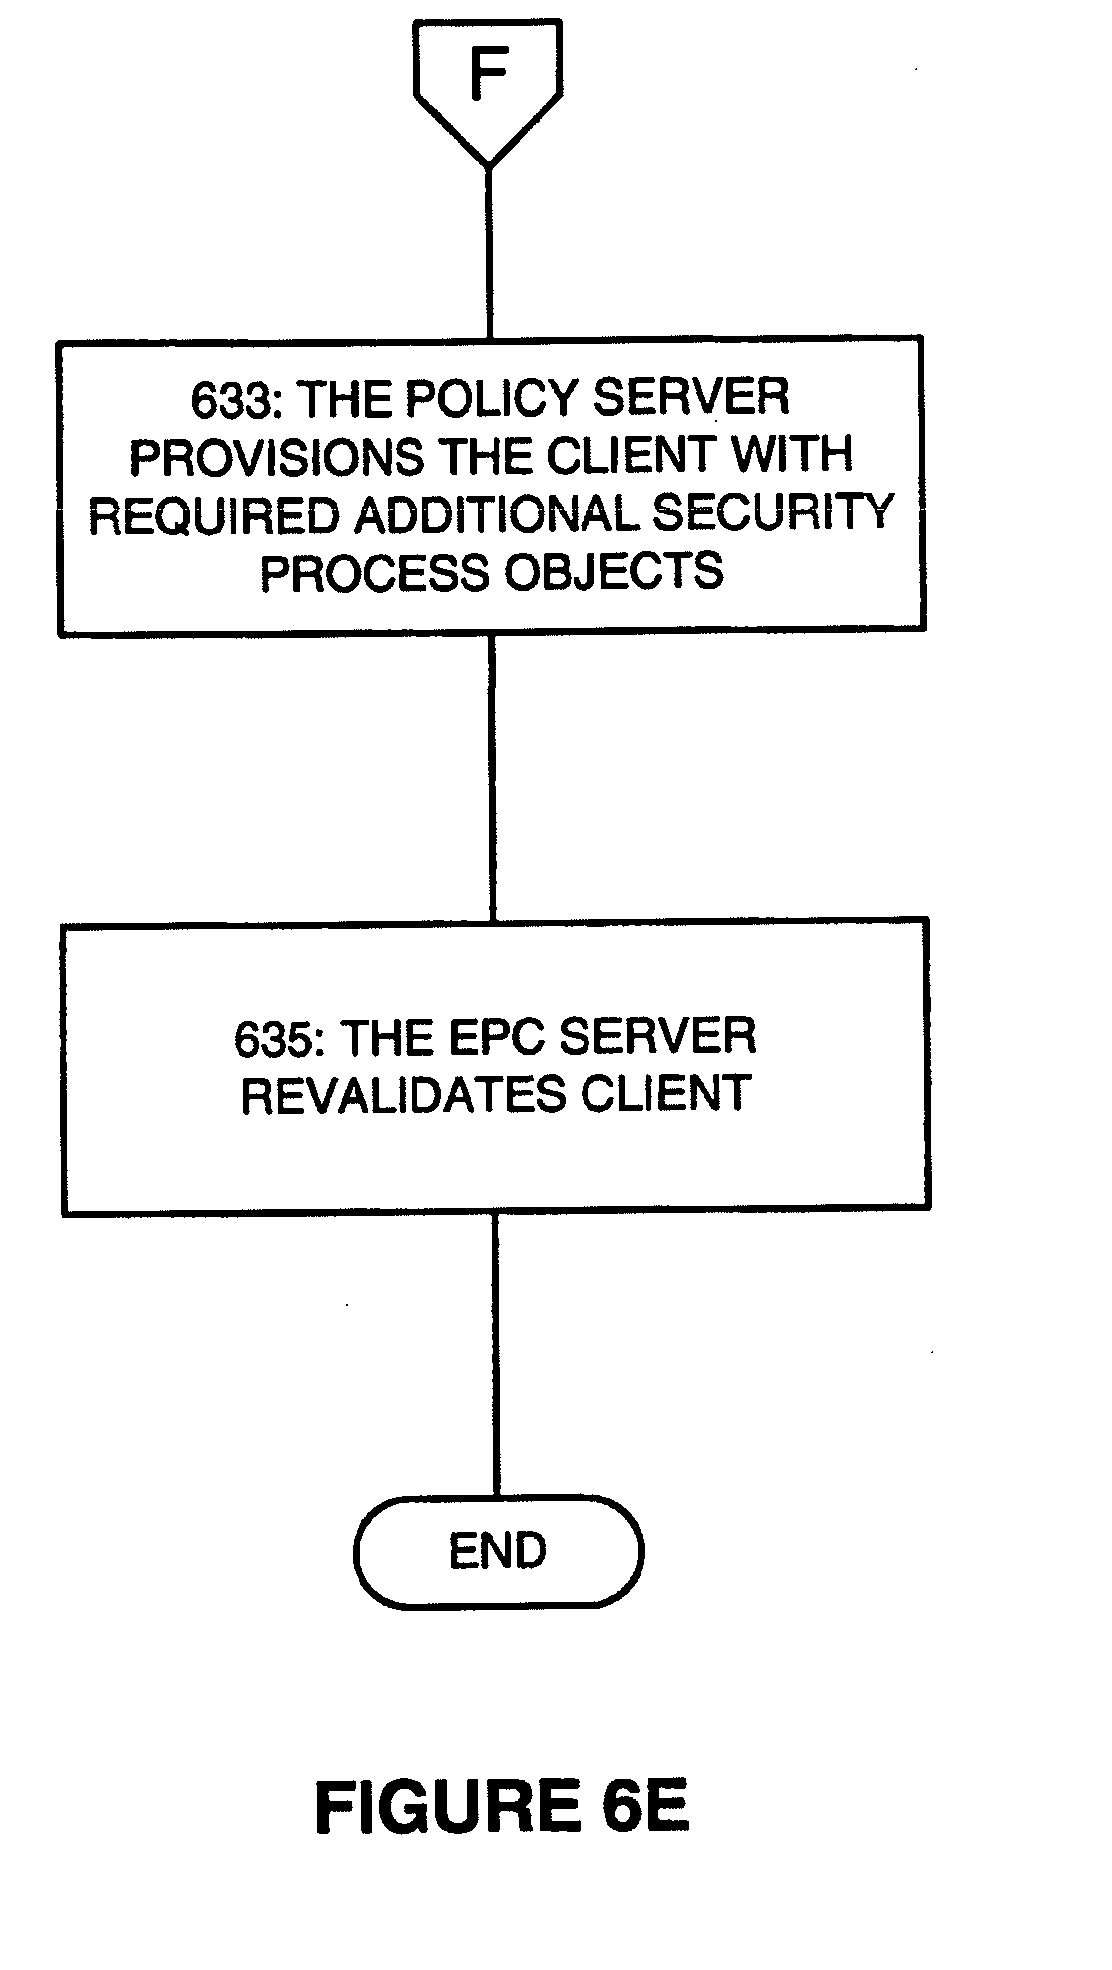 operating environment These limitations inherent to government contracts are a big part of what you might call the operating environment of a service provider, but they, too, do not appear to be the reason why fegs went under.